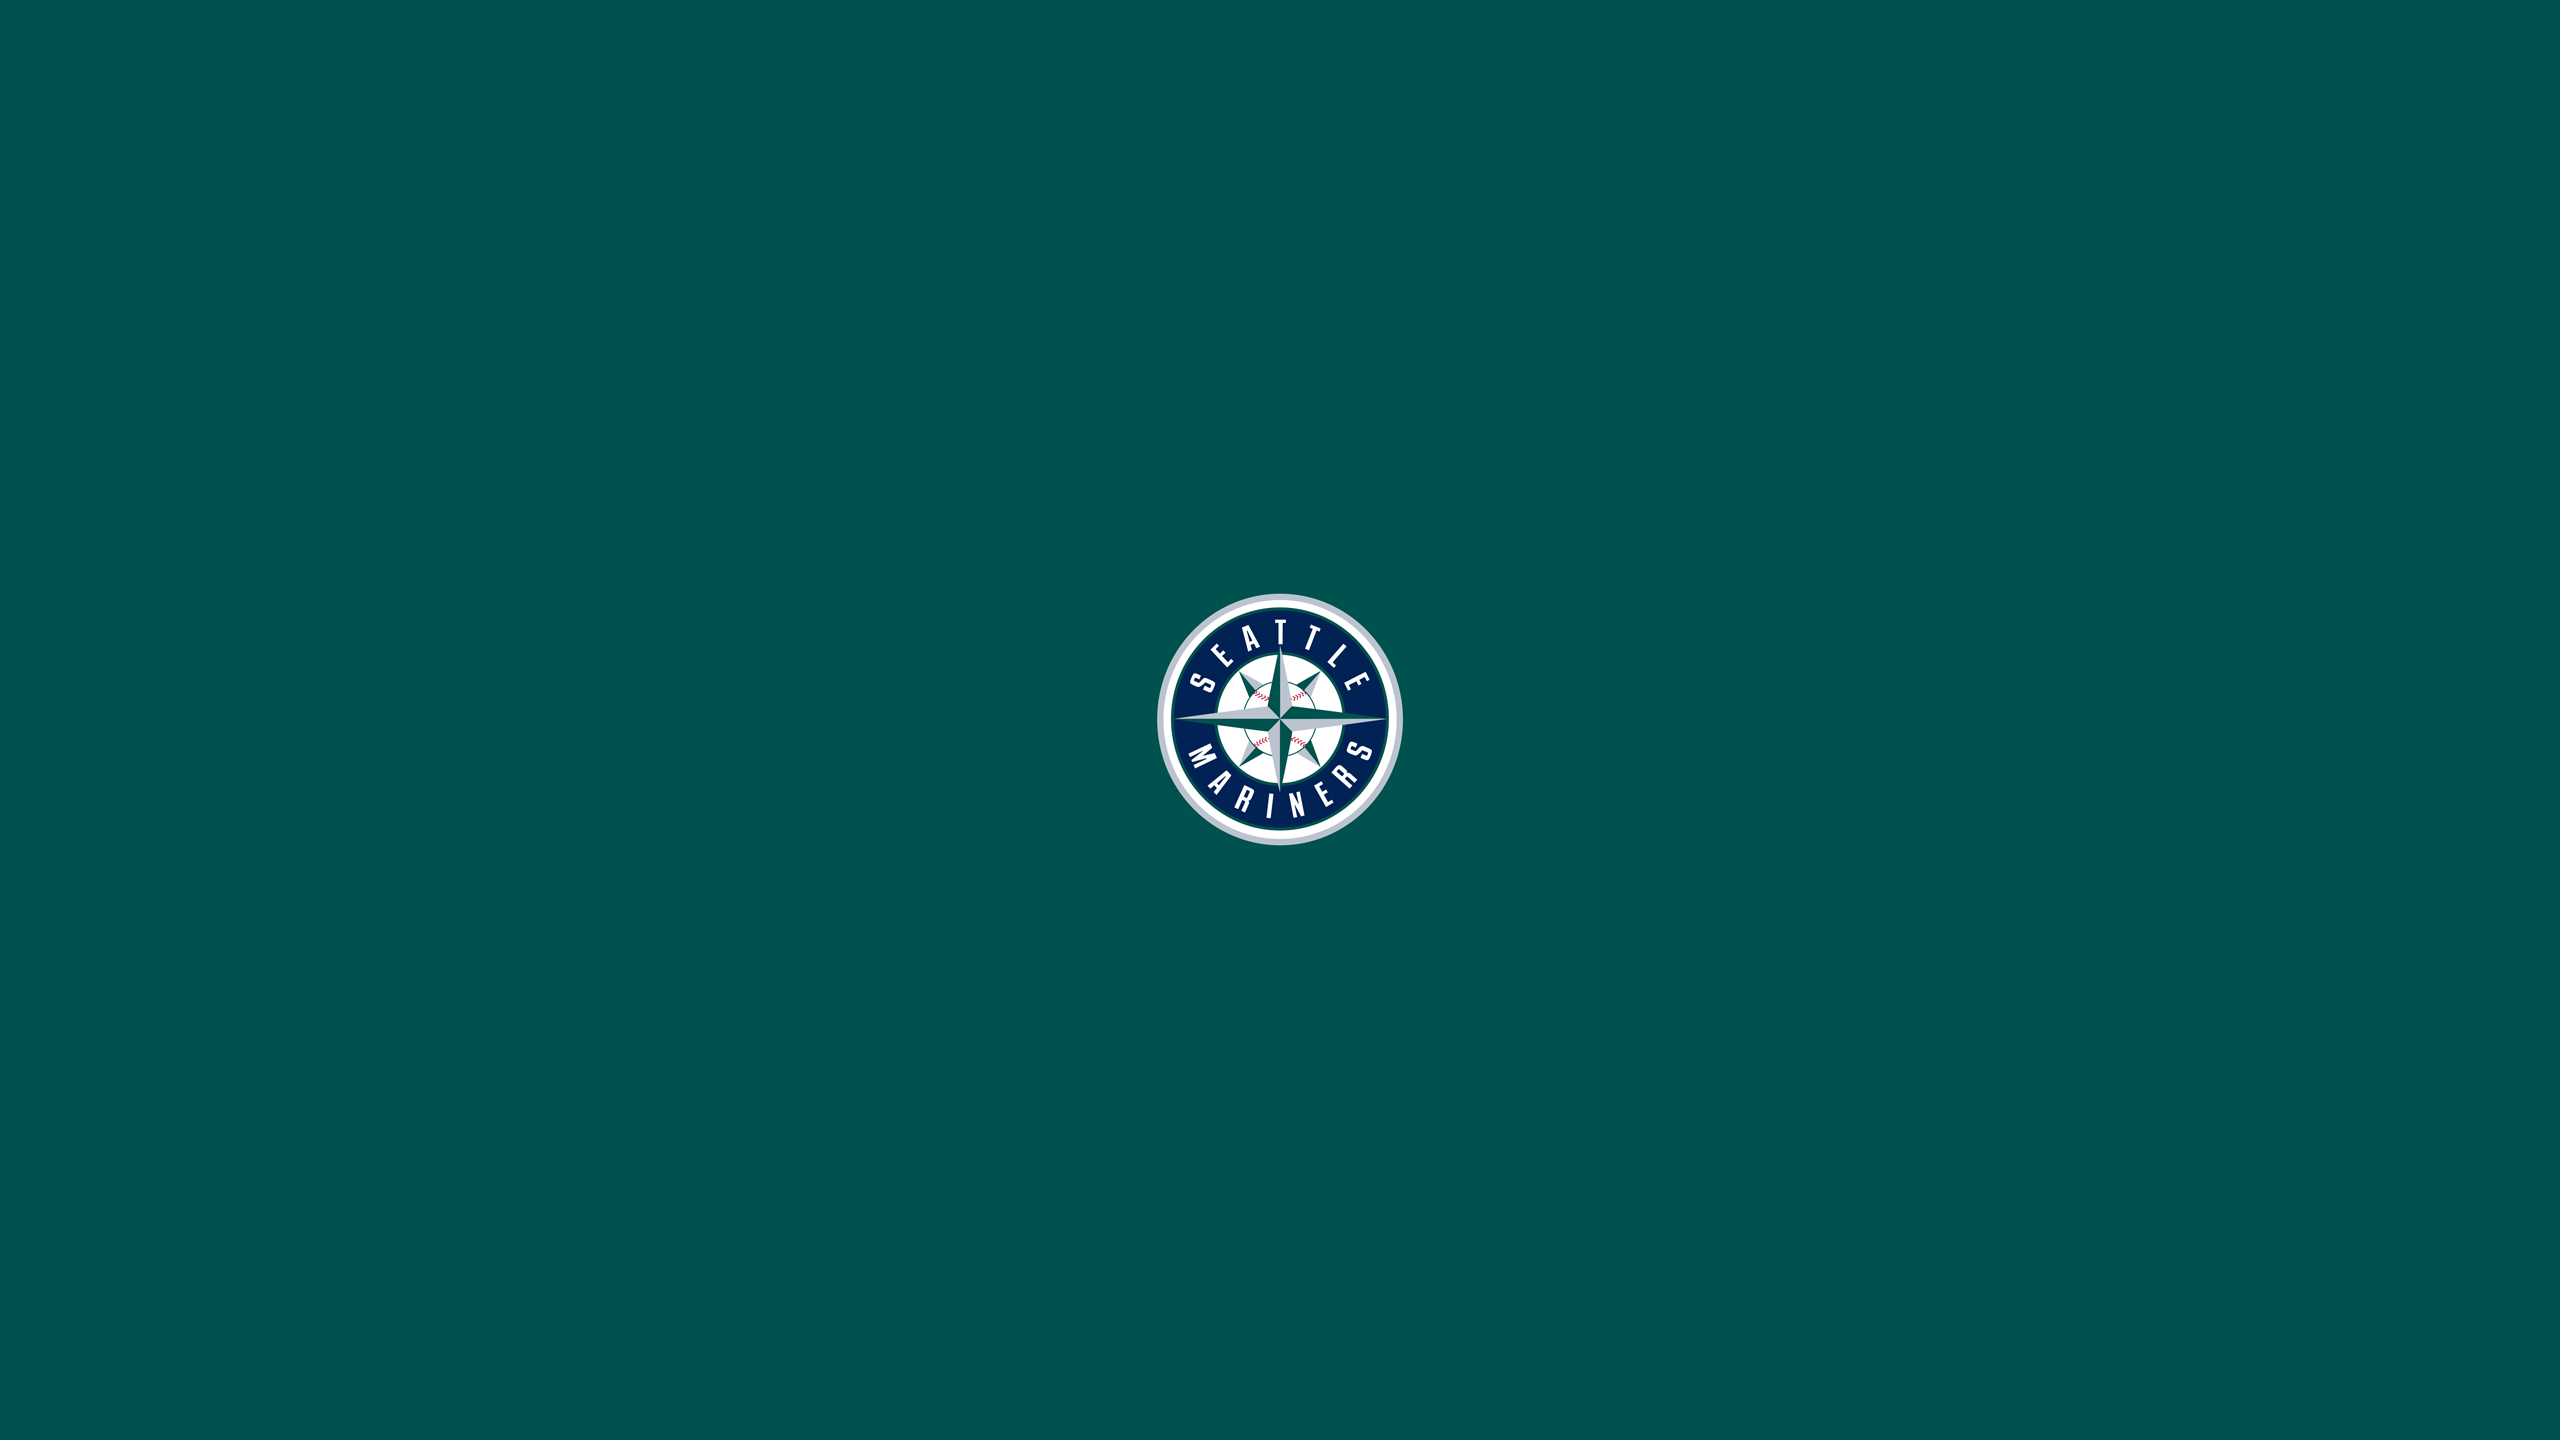 Seattle Mariners Images Crazy Gallery 2560x1440